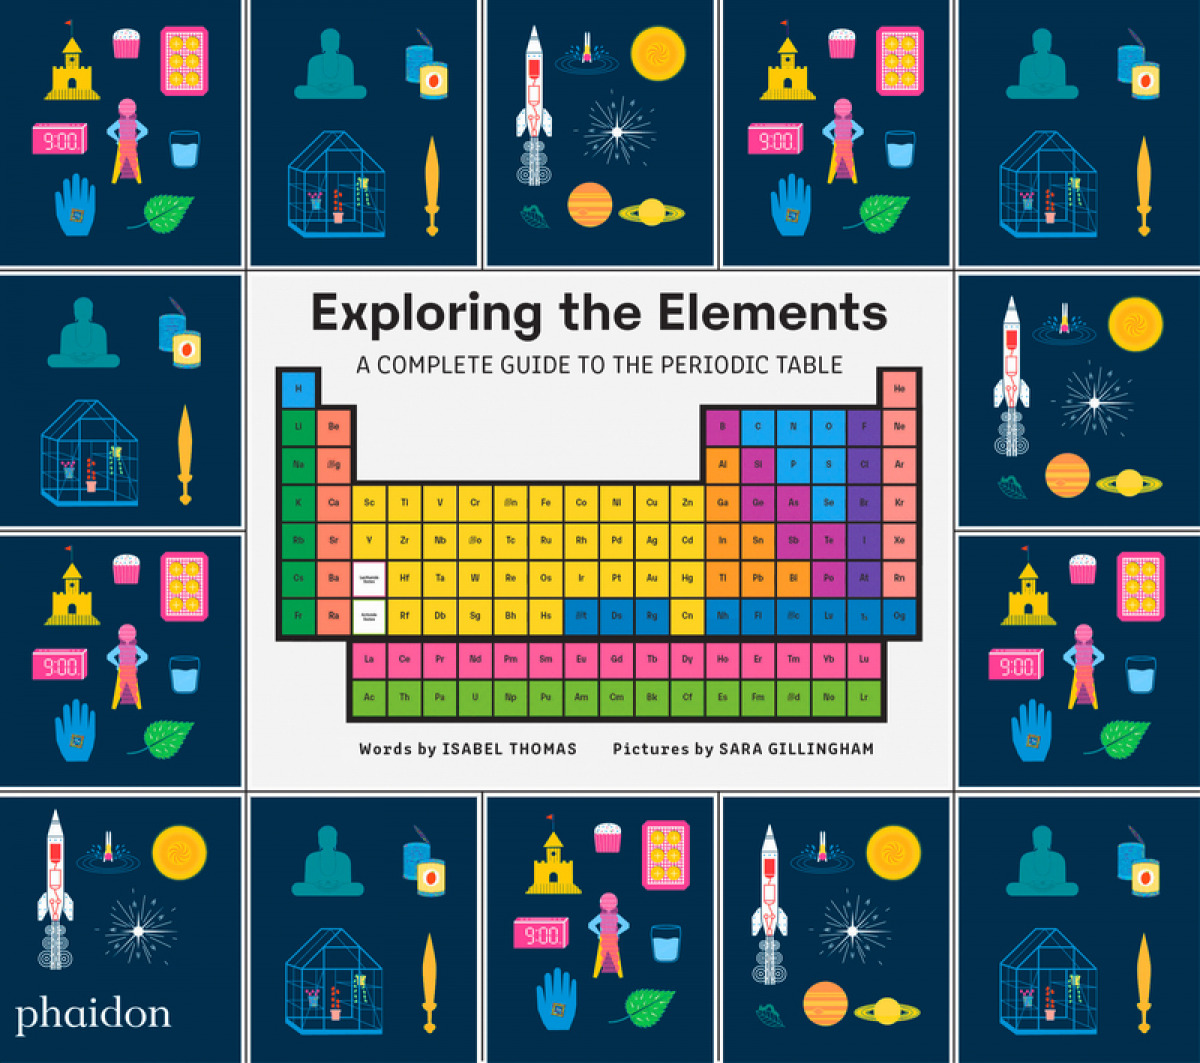 EXPLORING THE ELEMENTS 9781838661601